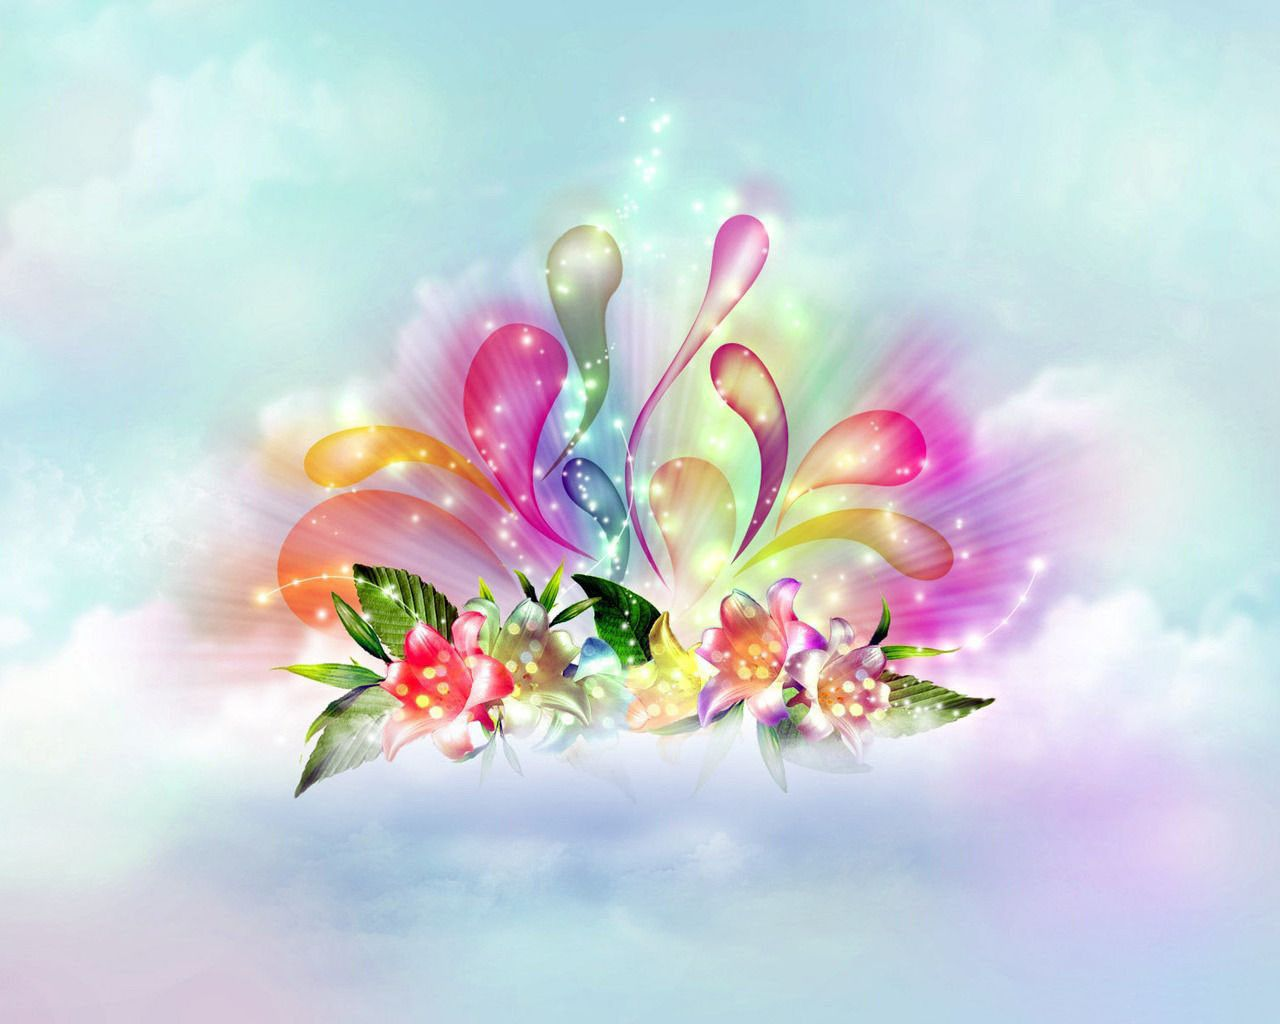 Graphic Light Color Wallpapers For Desktop 3d Beautiful Flowers